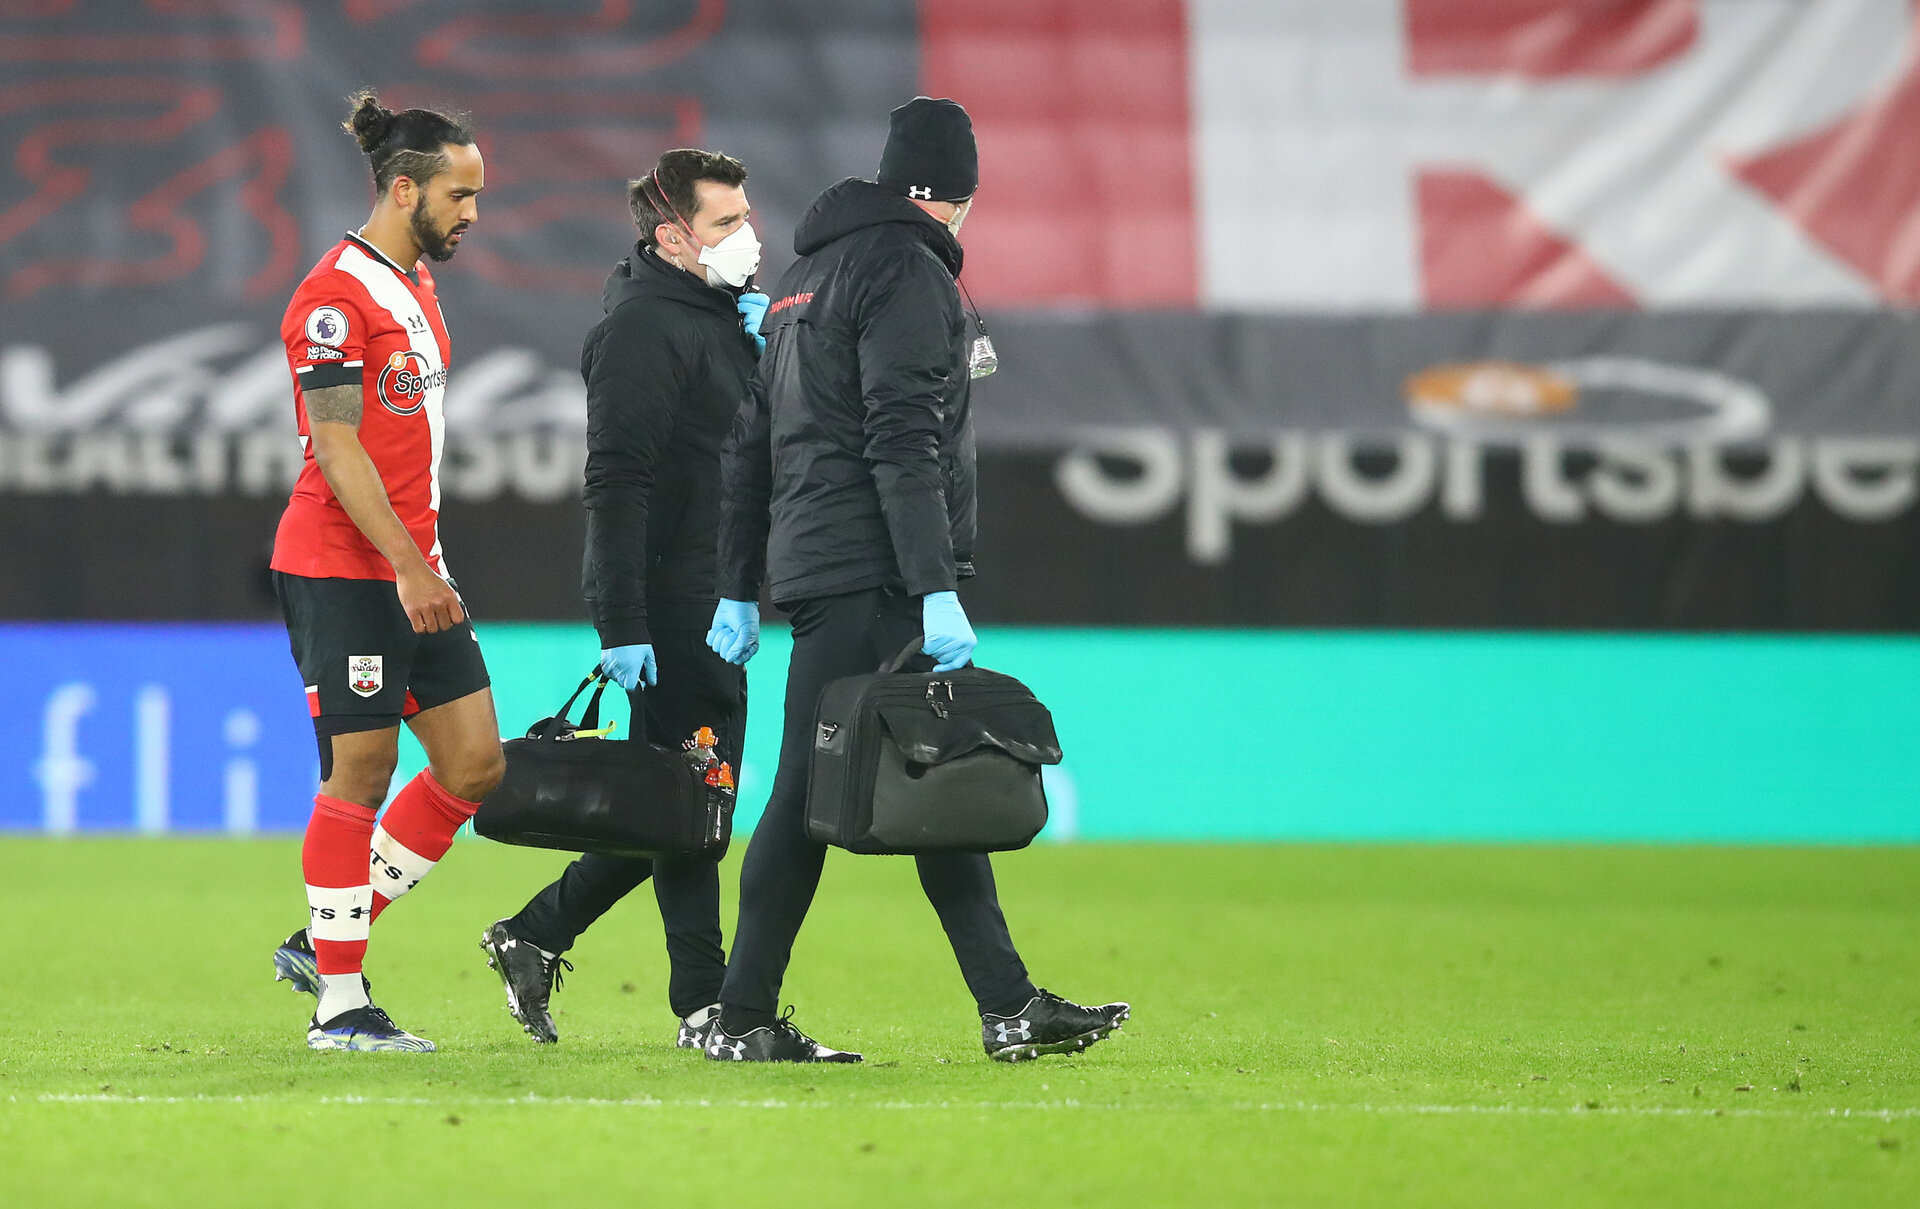 SOUTHAMPTON, ENGLAND - JANUARY 30: Theo Walcott(L) of Southampton leaves the pitch with an injury alongside Southampton FC medical staff during the Premier League match between Southampton and Aston Villa at St Mary's Stadium on January 30, 2021 in Southampton, England. Sporting stadiums around the UK remain under strict restrictions due to the Coronavirus Pandemic as Government social distancing laws prohibit fans inside venues resulting in games being played behind closed doors. (Photo by Matt Watson/Southampton FC via Getty Images)